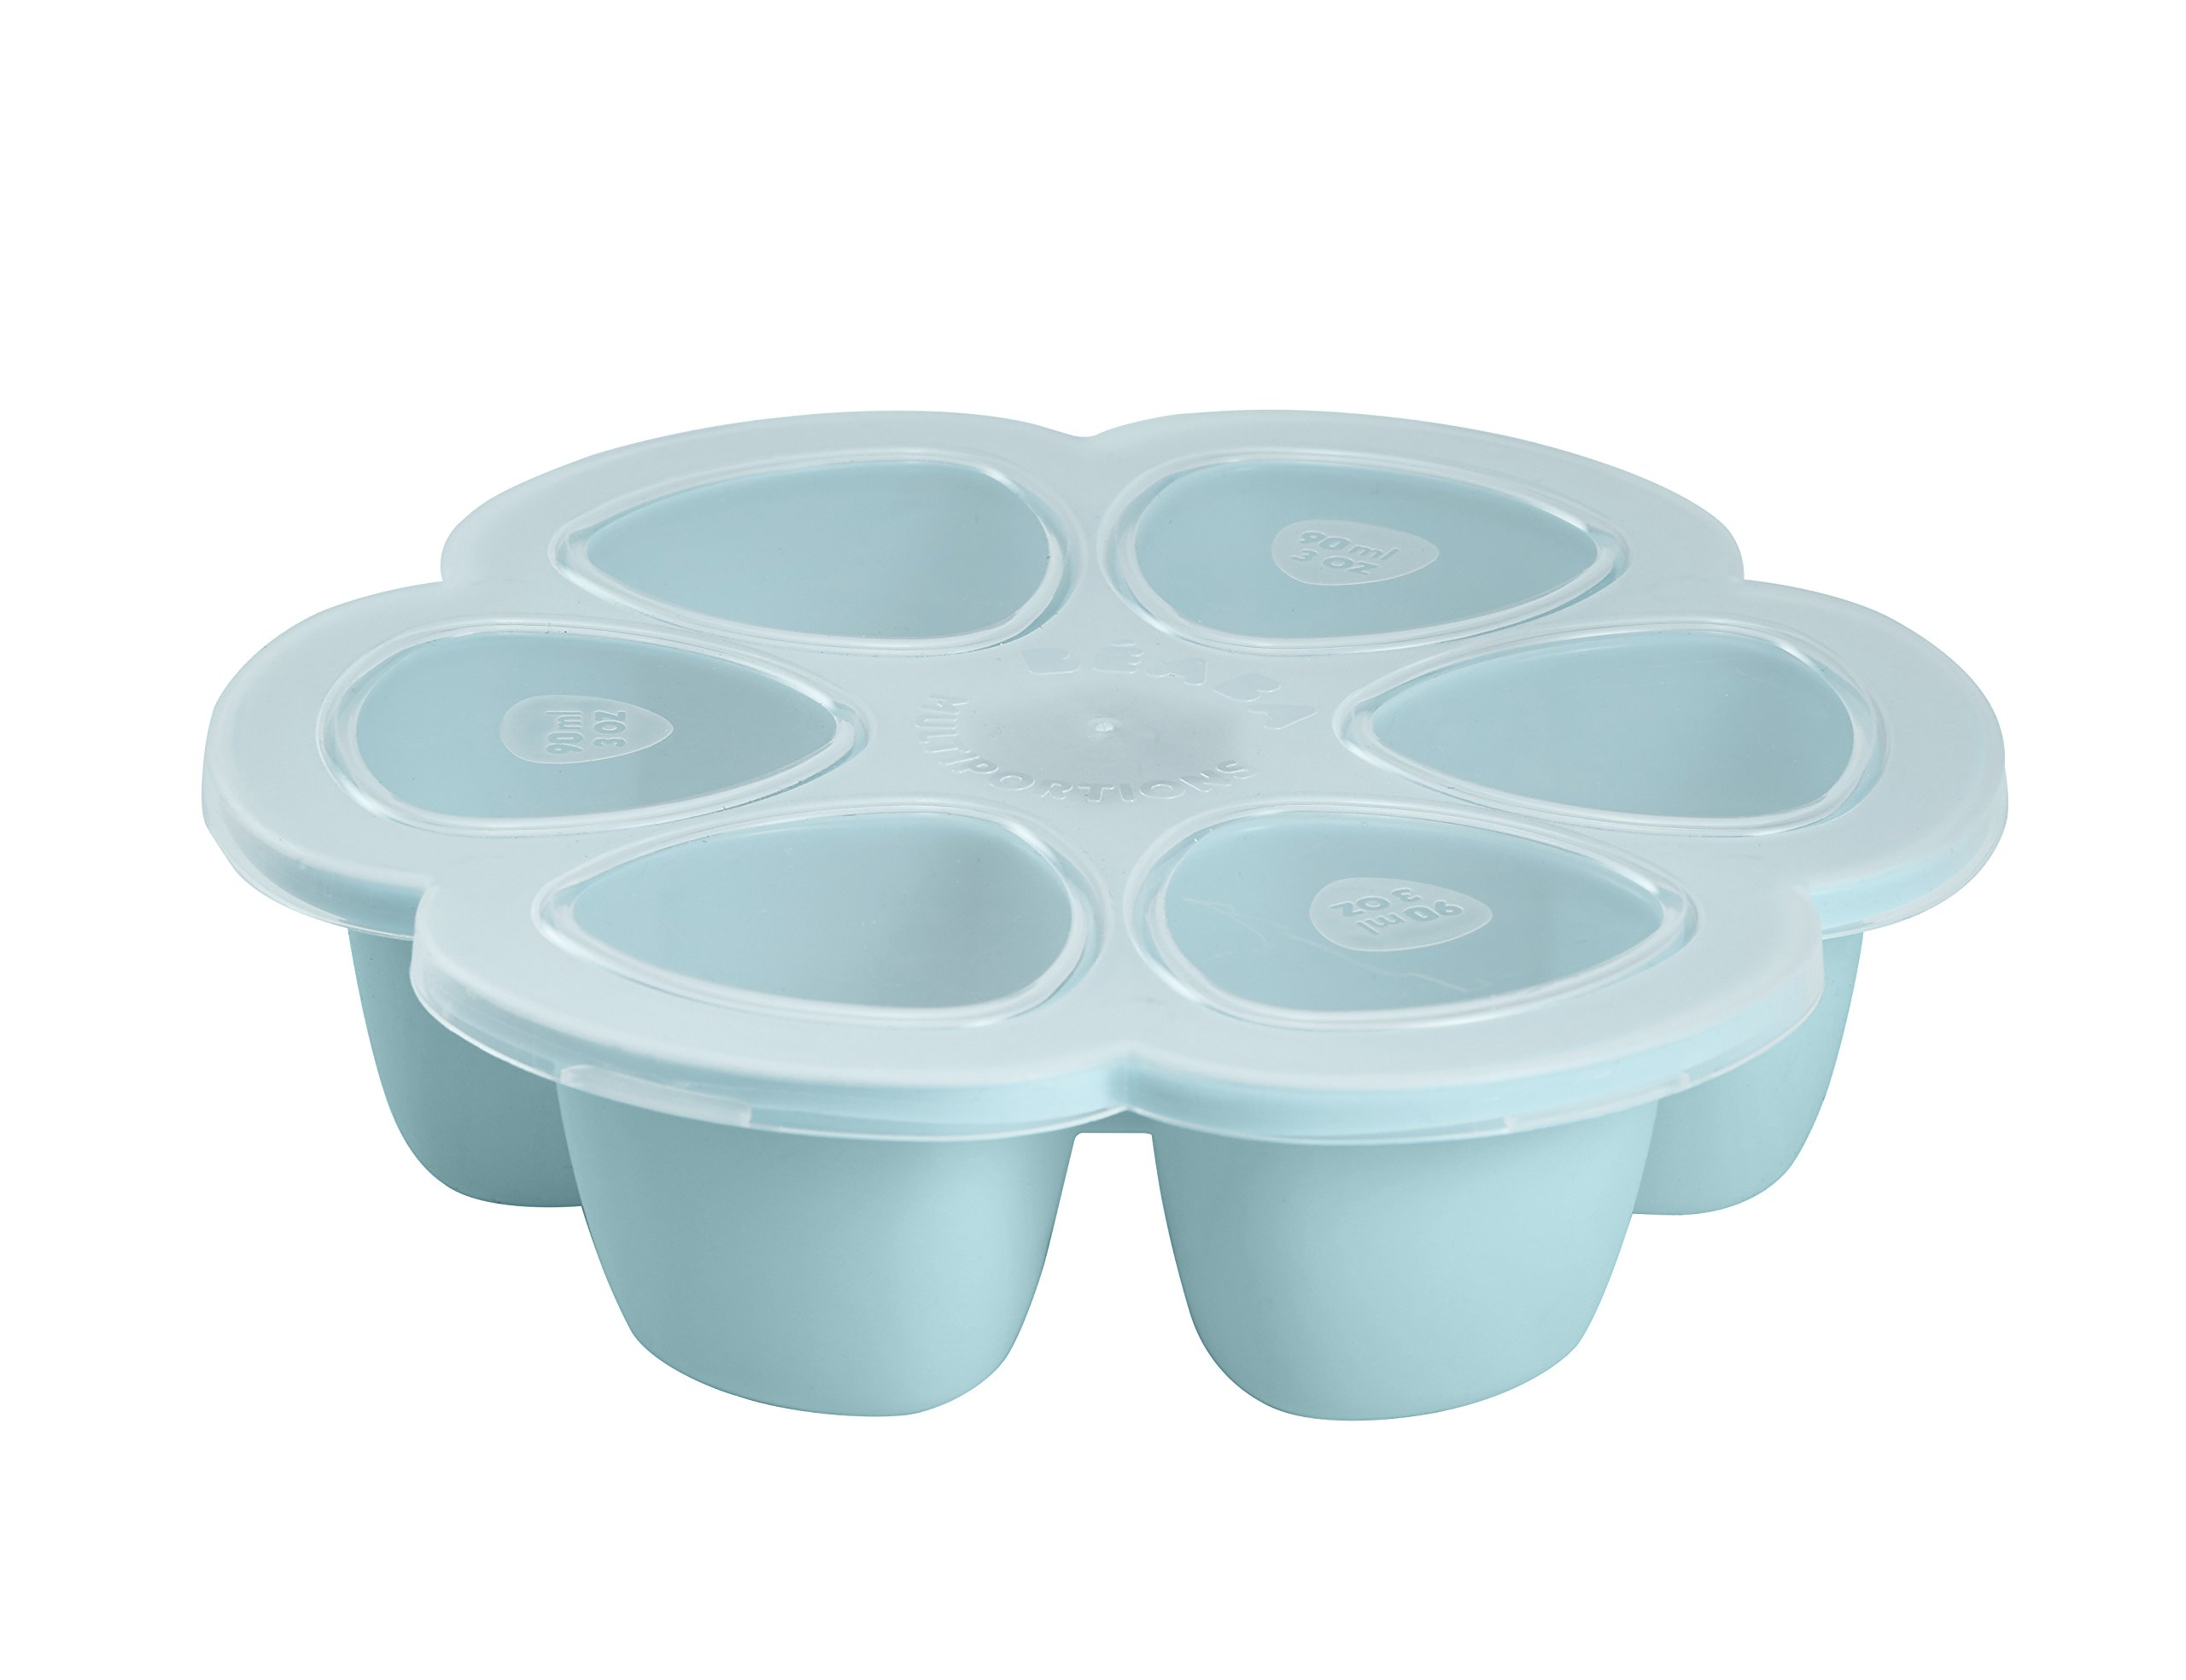 BEABA Silicone Multiportions Baby Food Tray, Oven Safe, Made in Italy, Sky